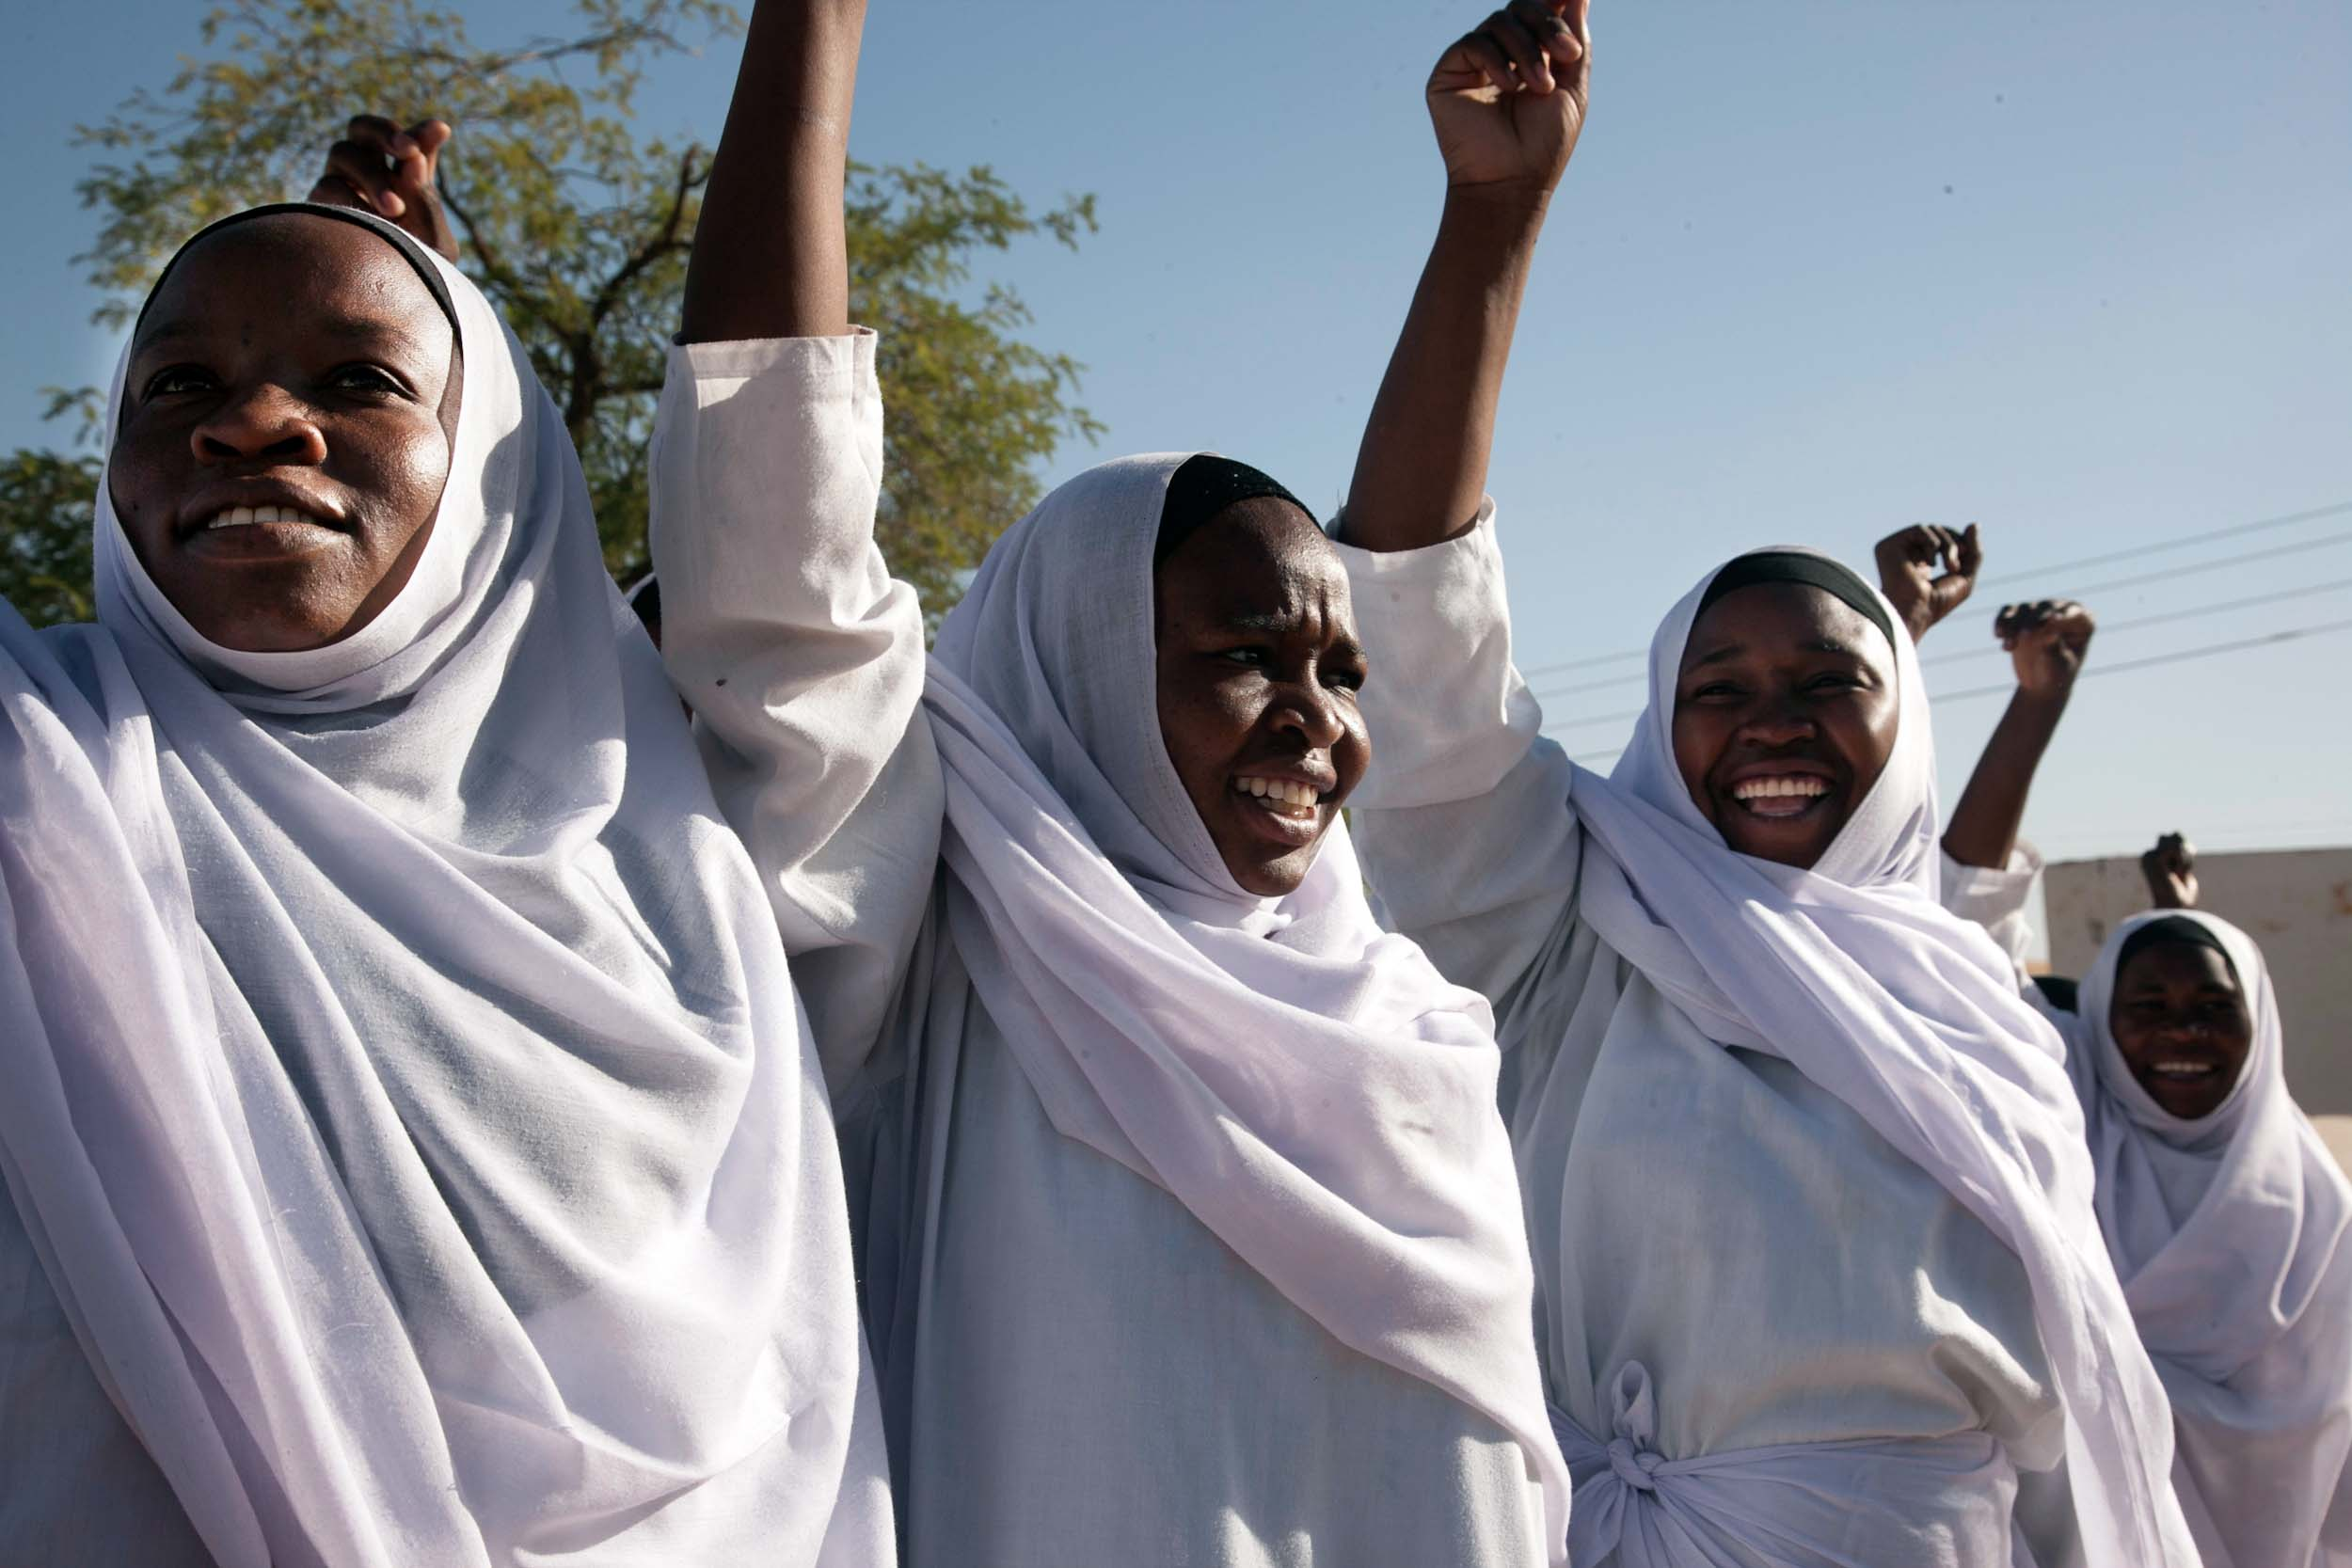 Activism against Gender Violence. Photo: Hamid Abdulsalam, UNAMID